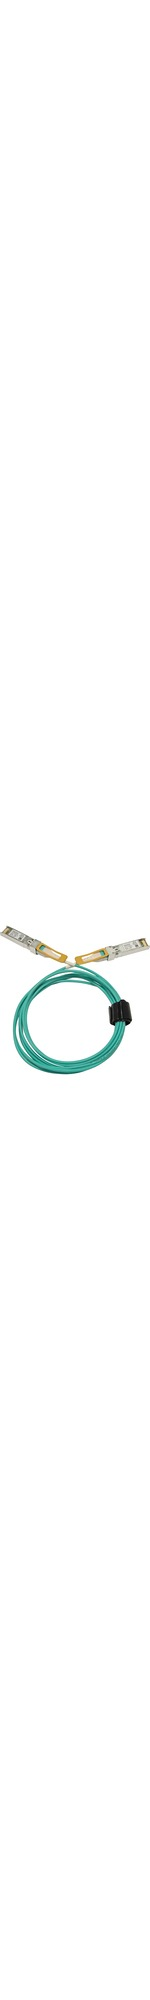 Mellanox Fibre Optic Network Cable for Network Device - 3 m - SFP28 Network - 3.13 GB/s